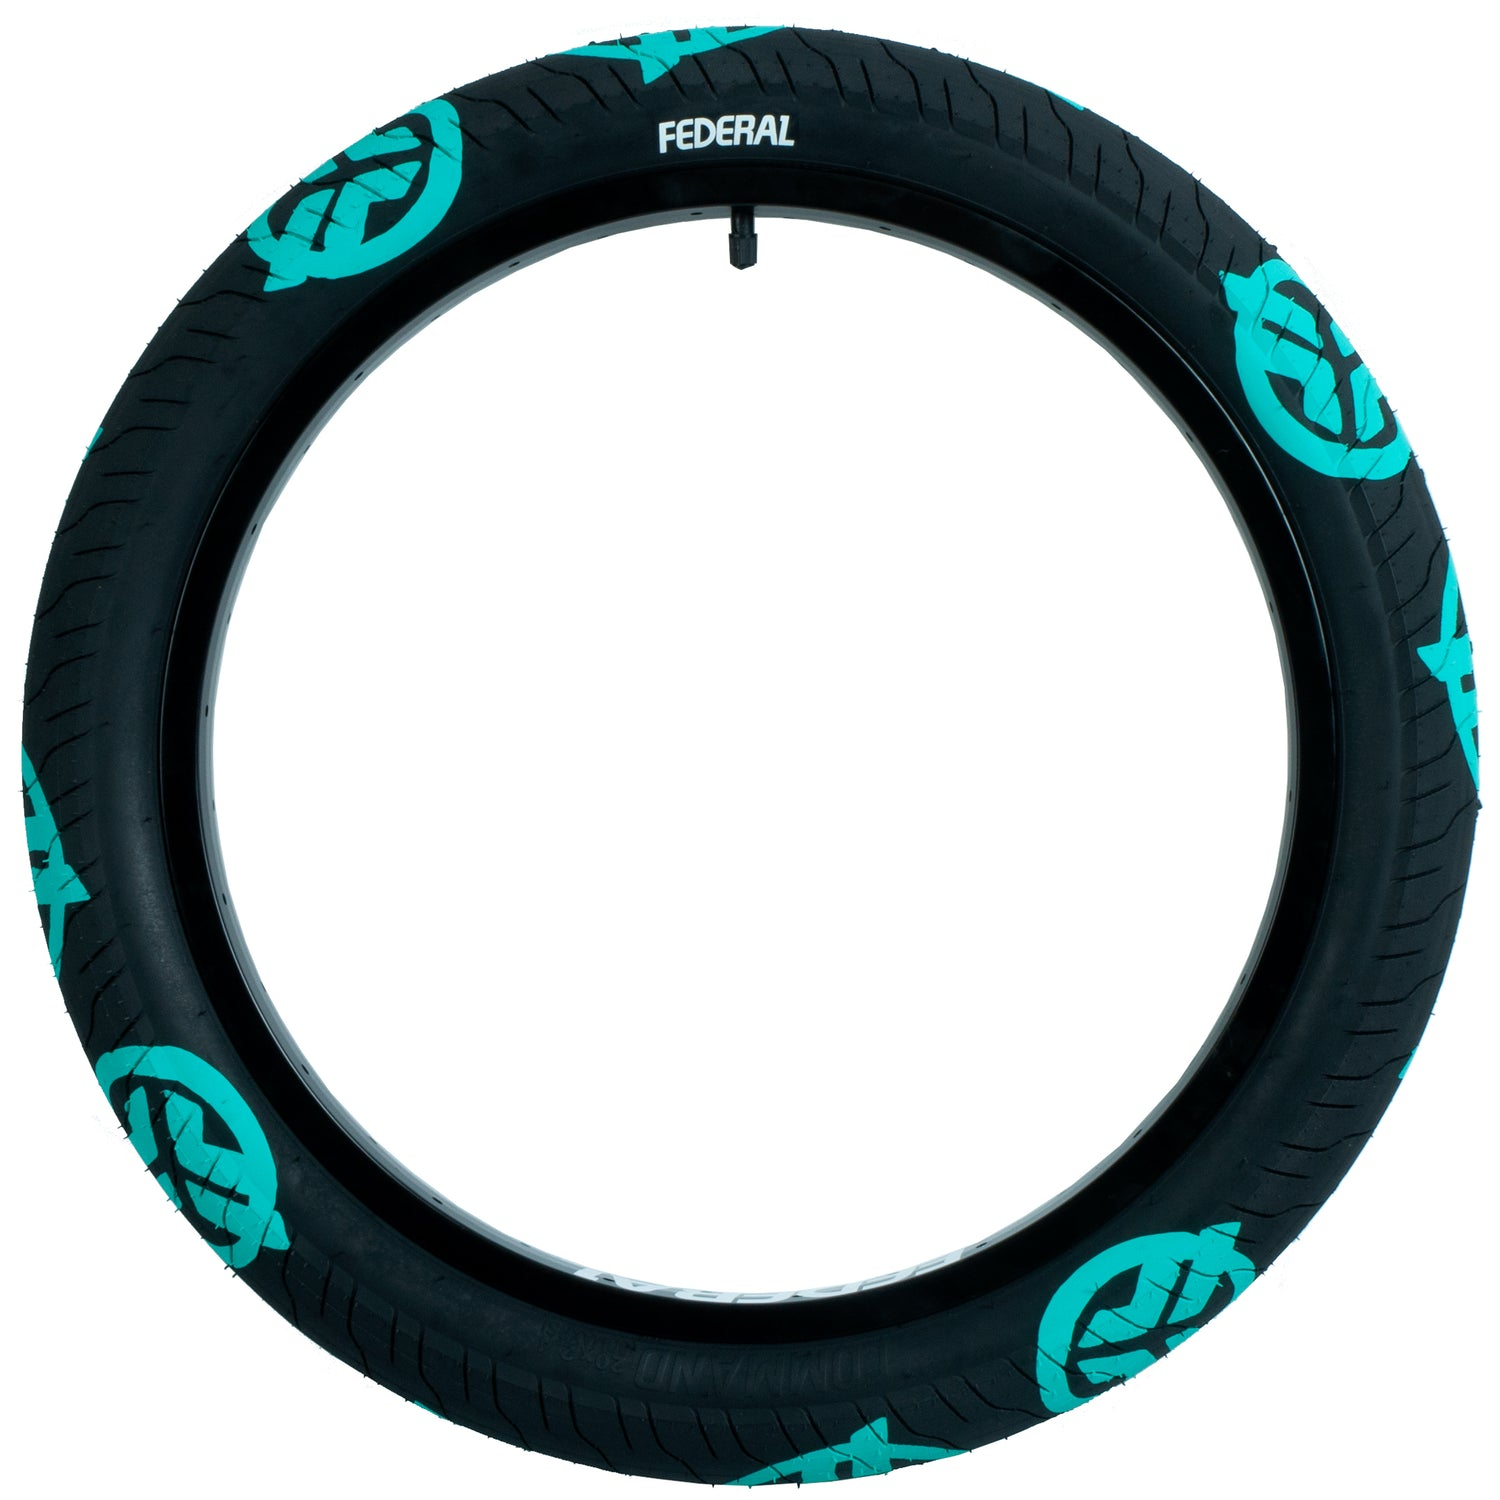 Federal Command LP Tyre - Black With Teal Logos 2.40"